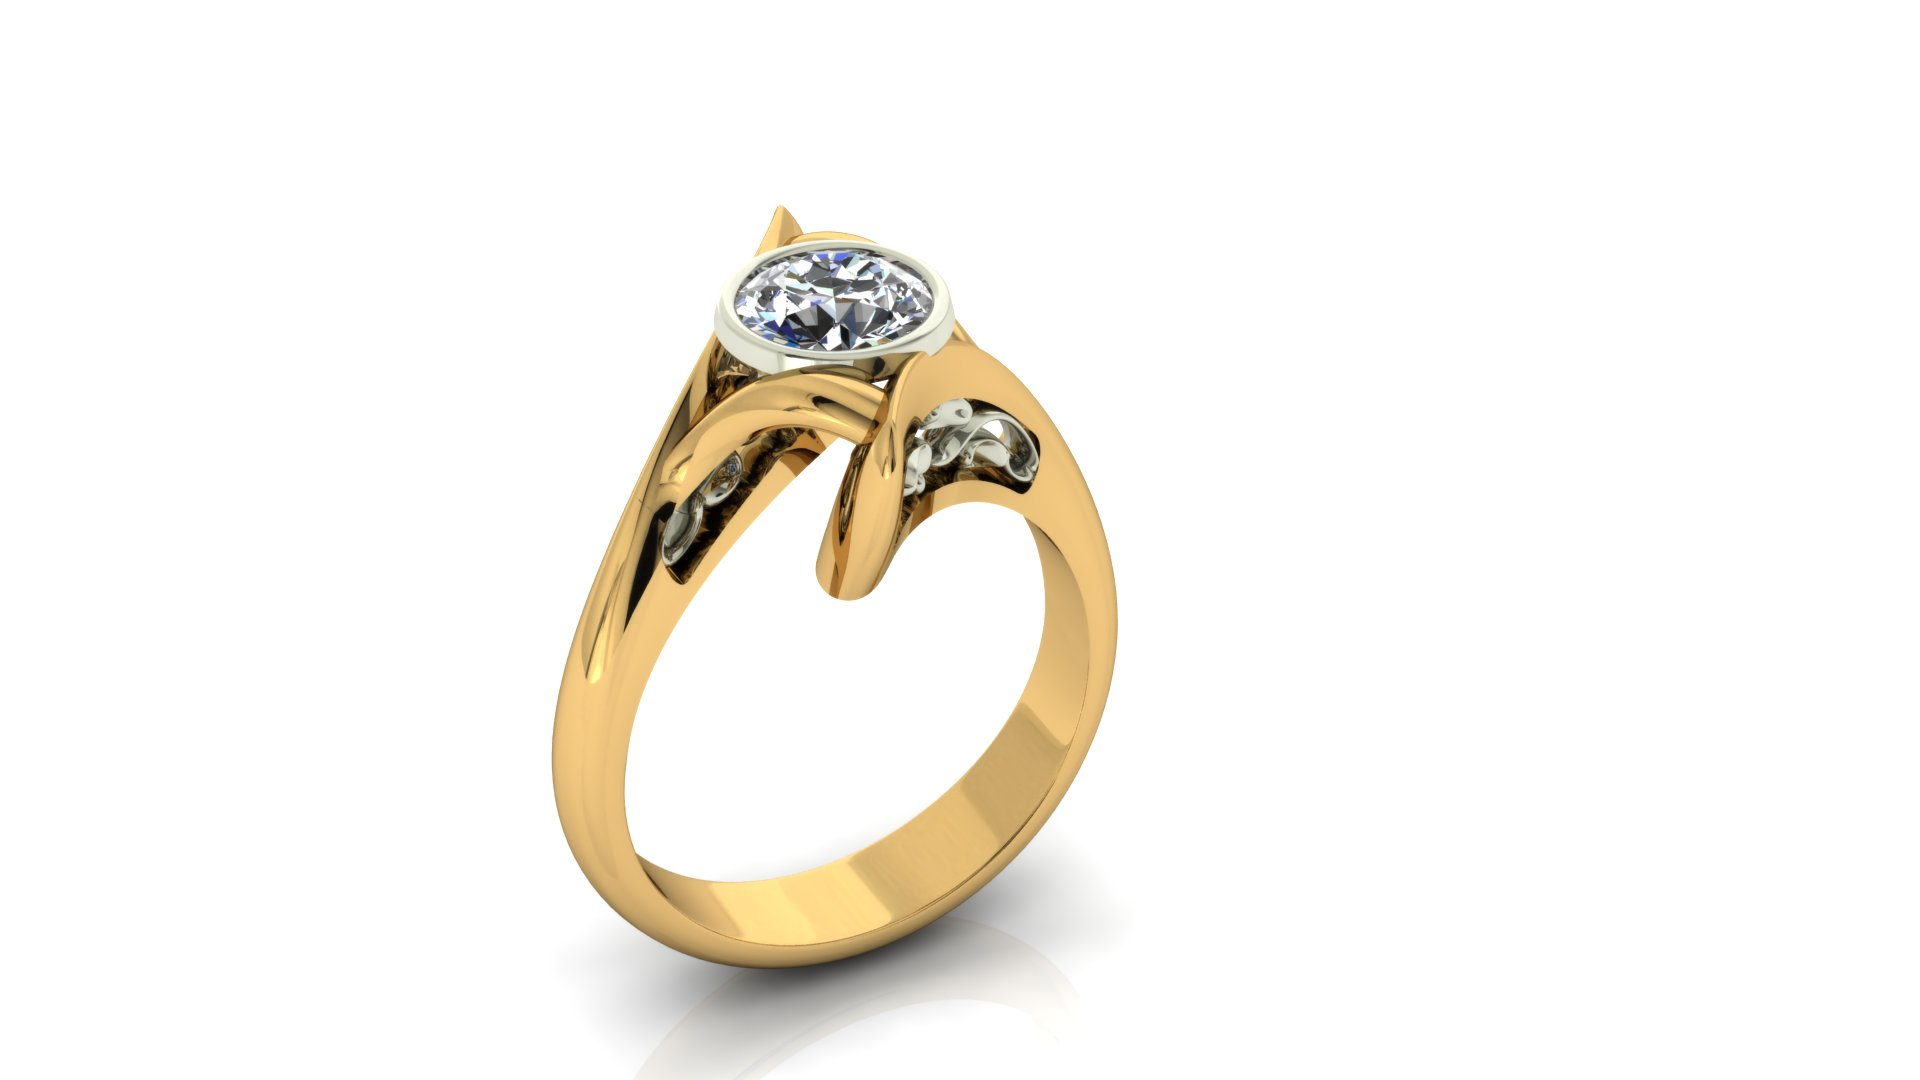 ARTISTIC YELLOW GOLD RING